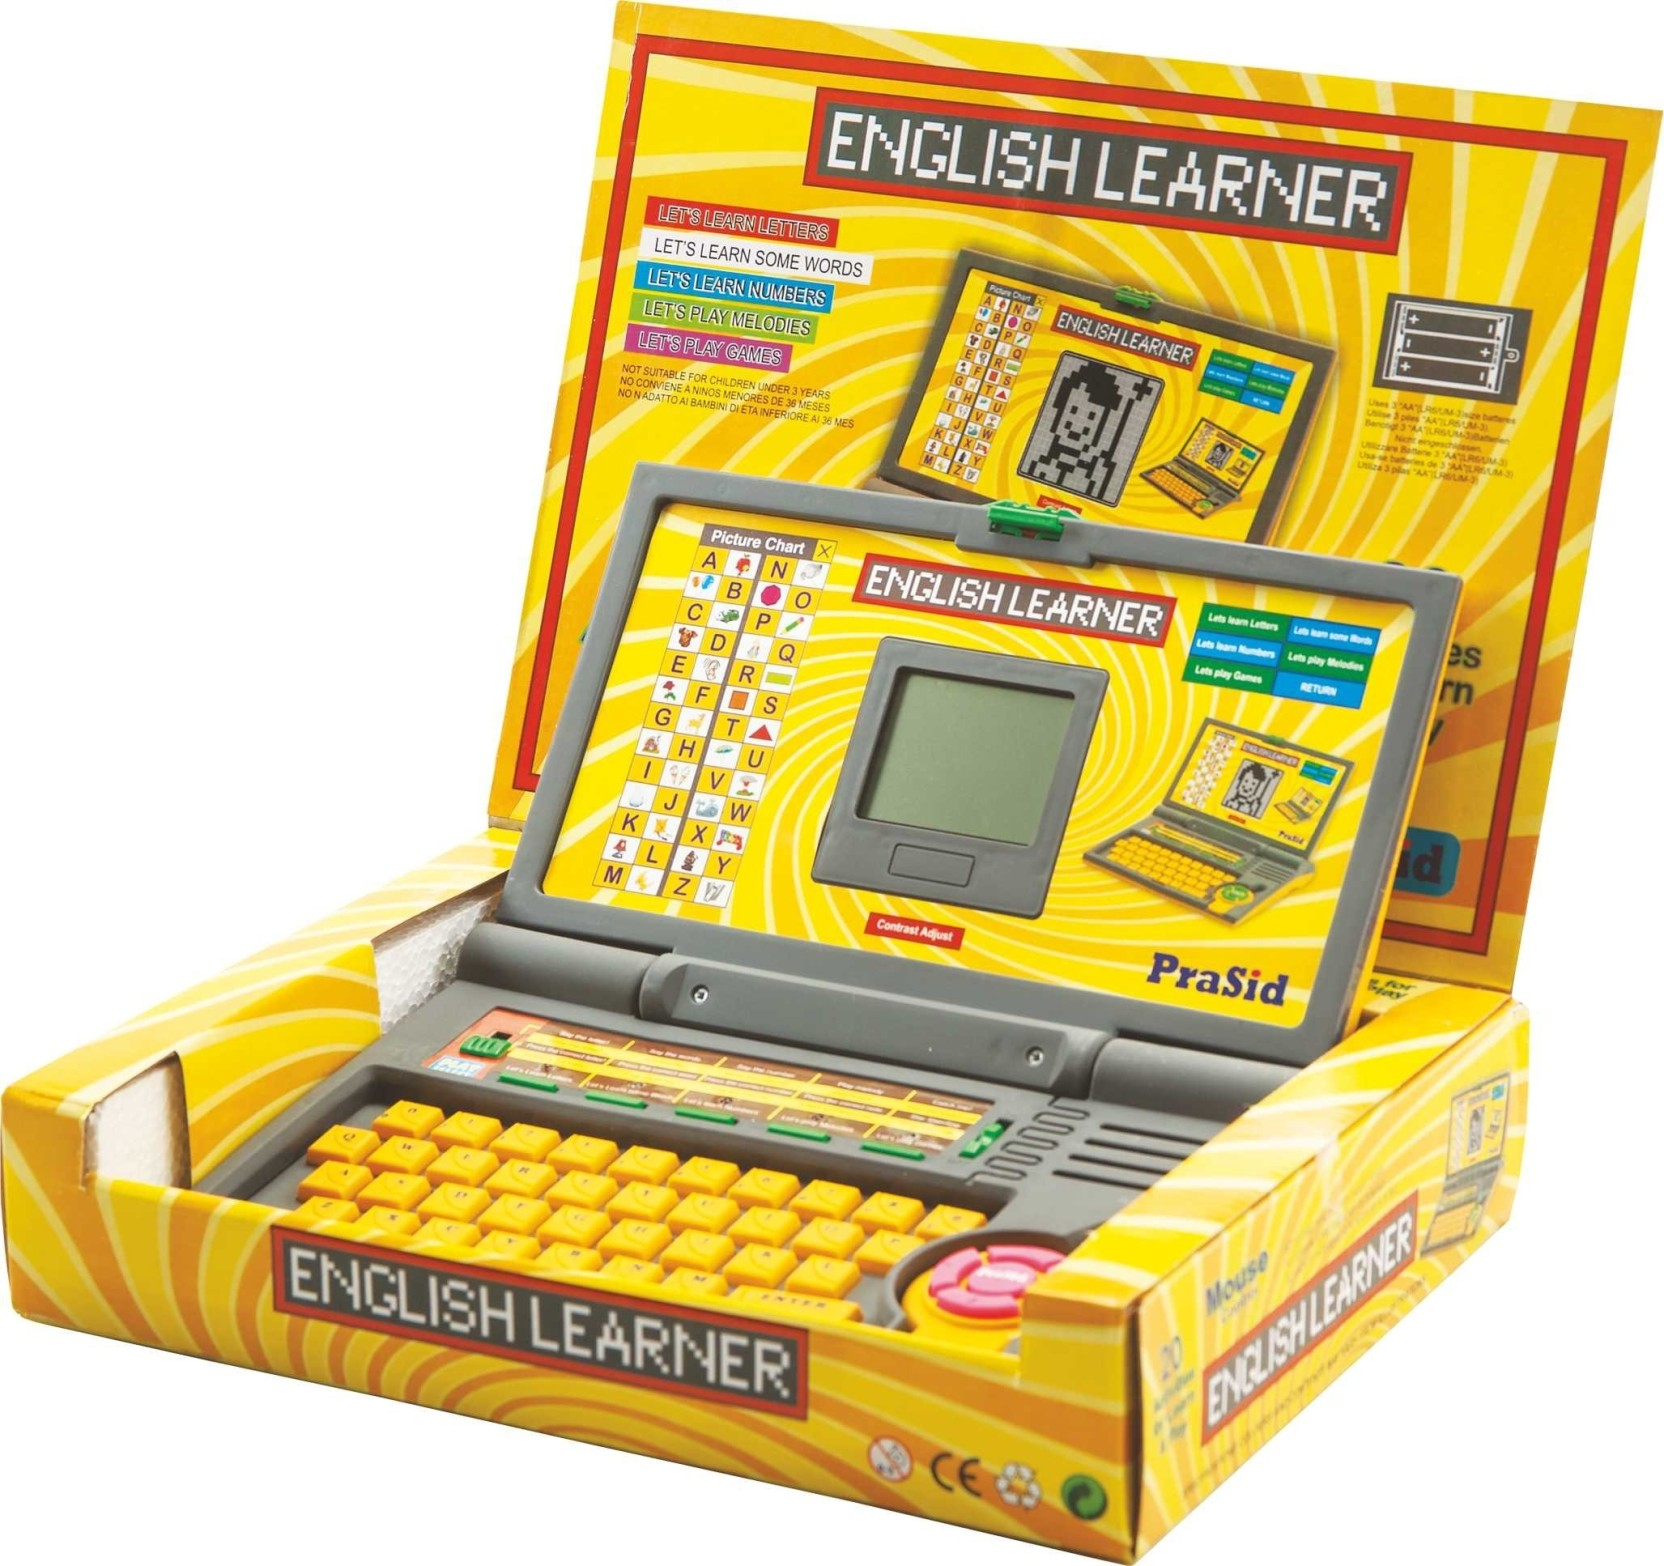 Prasid English Learner Laptop for Kids 20 Activities Price in